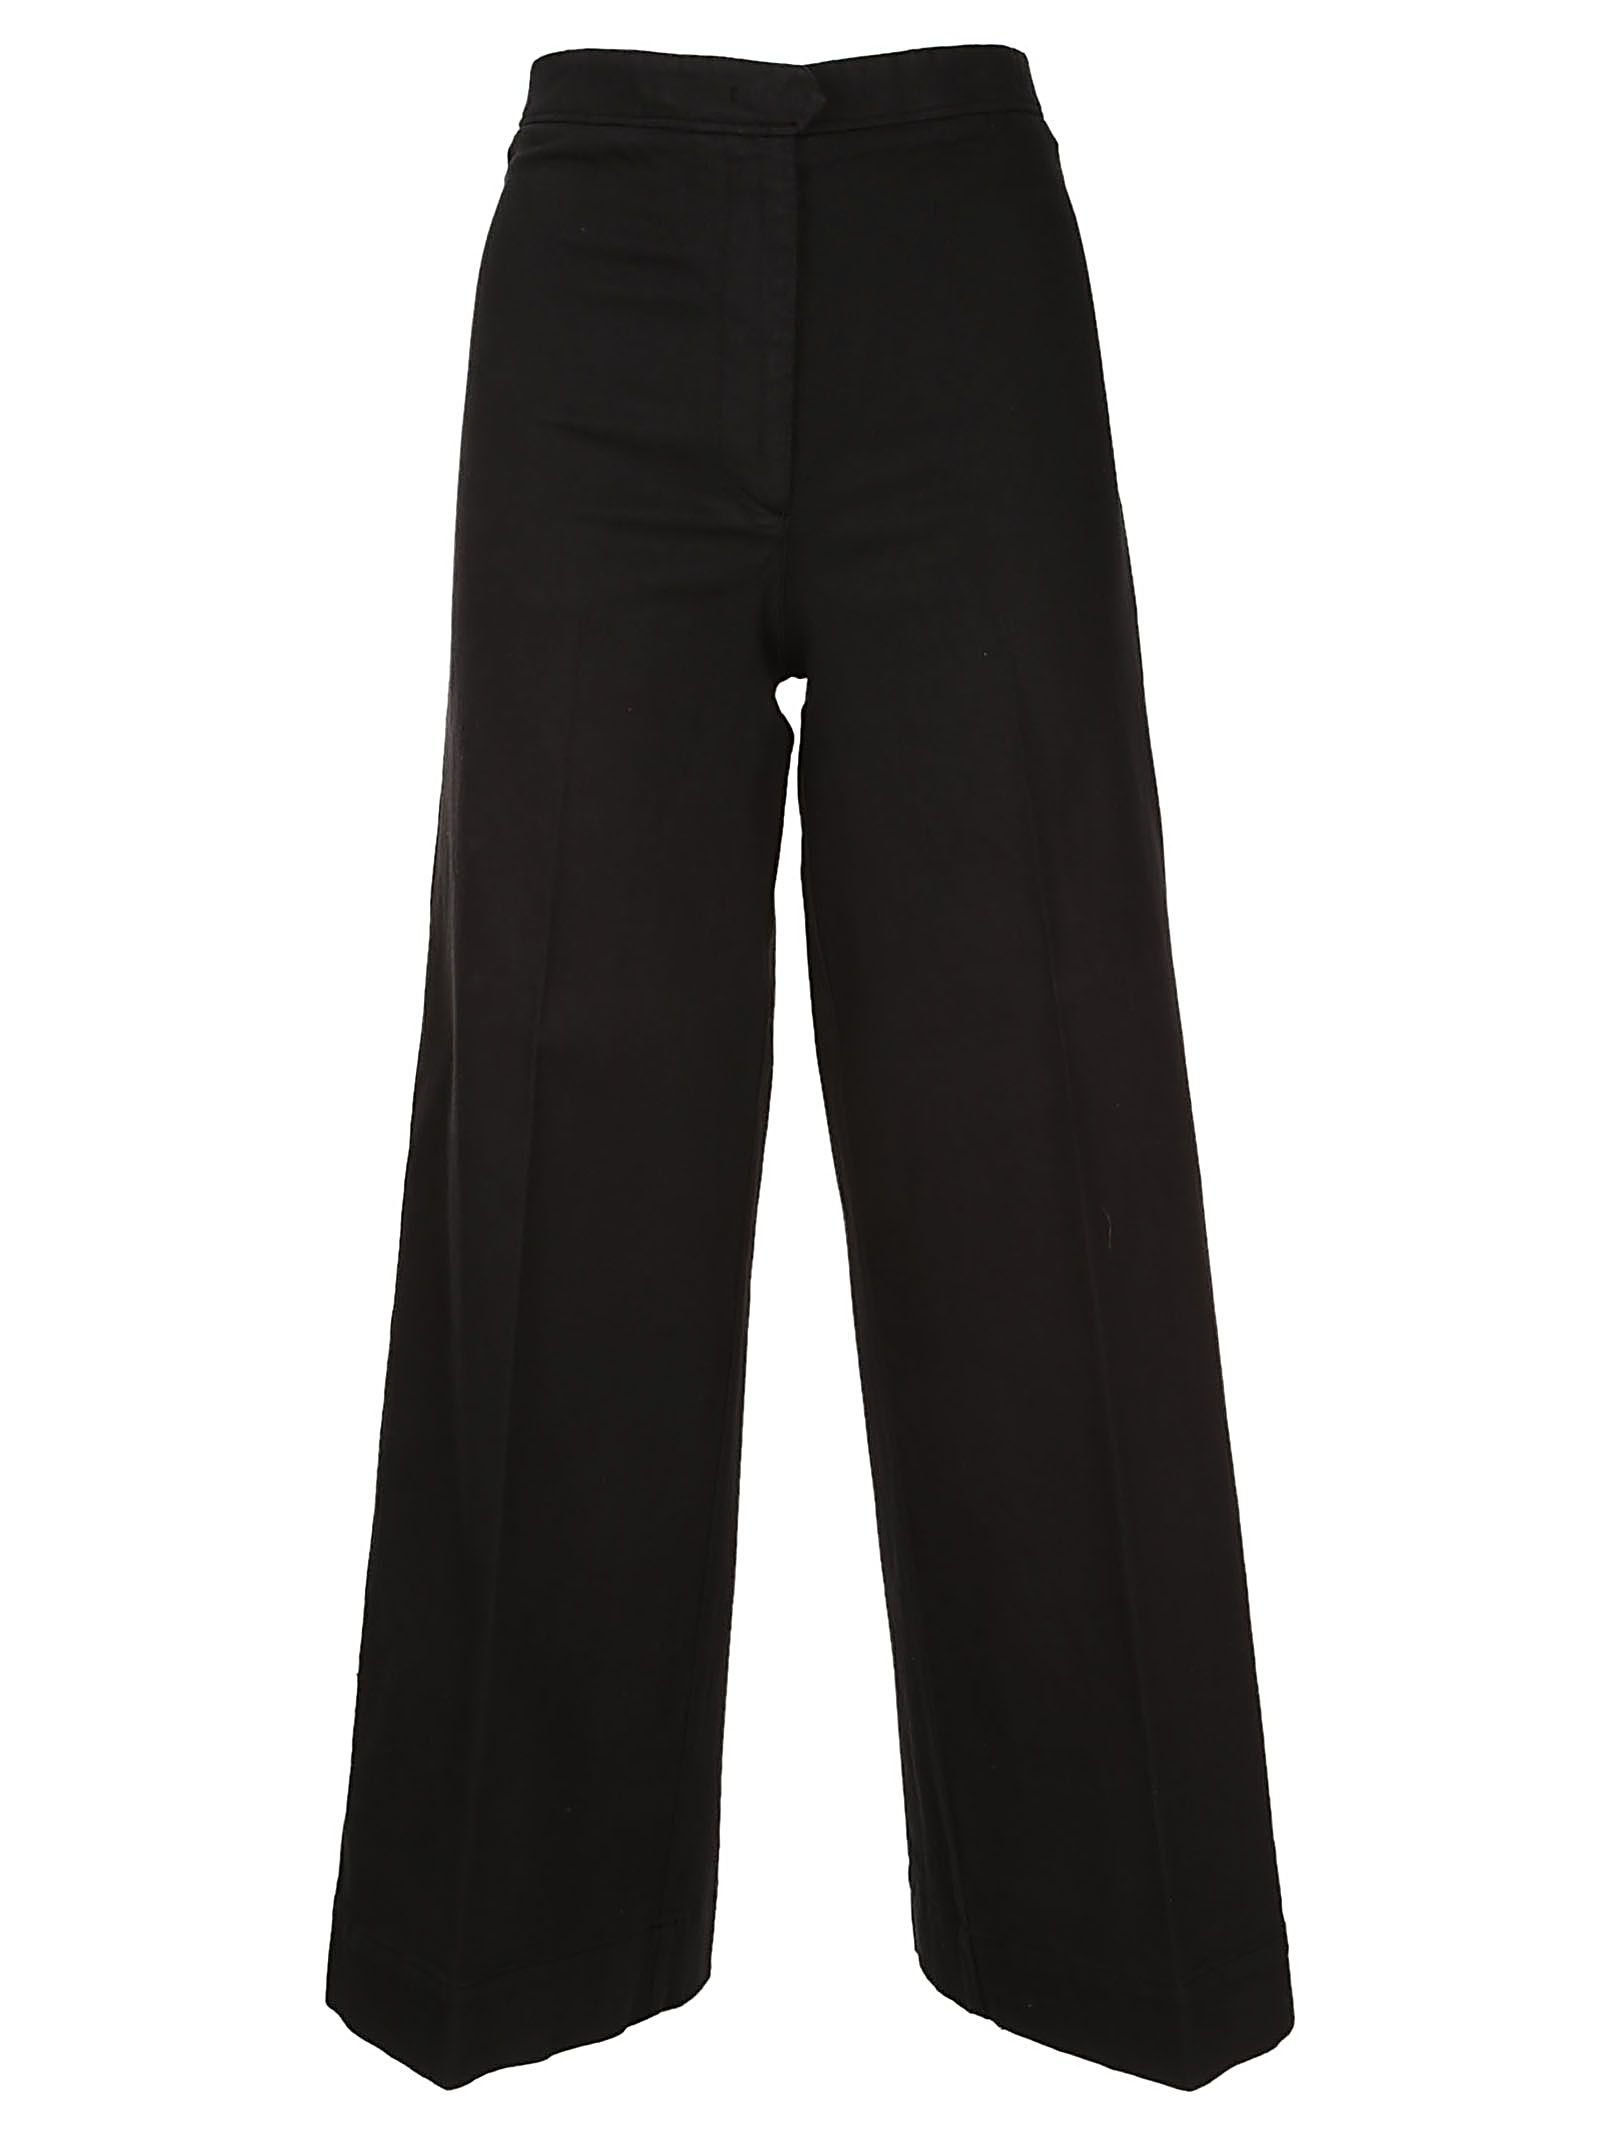 ql2 - Quelledue Wide Leg Trousers